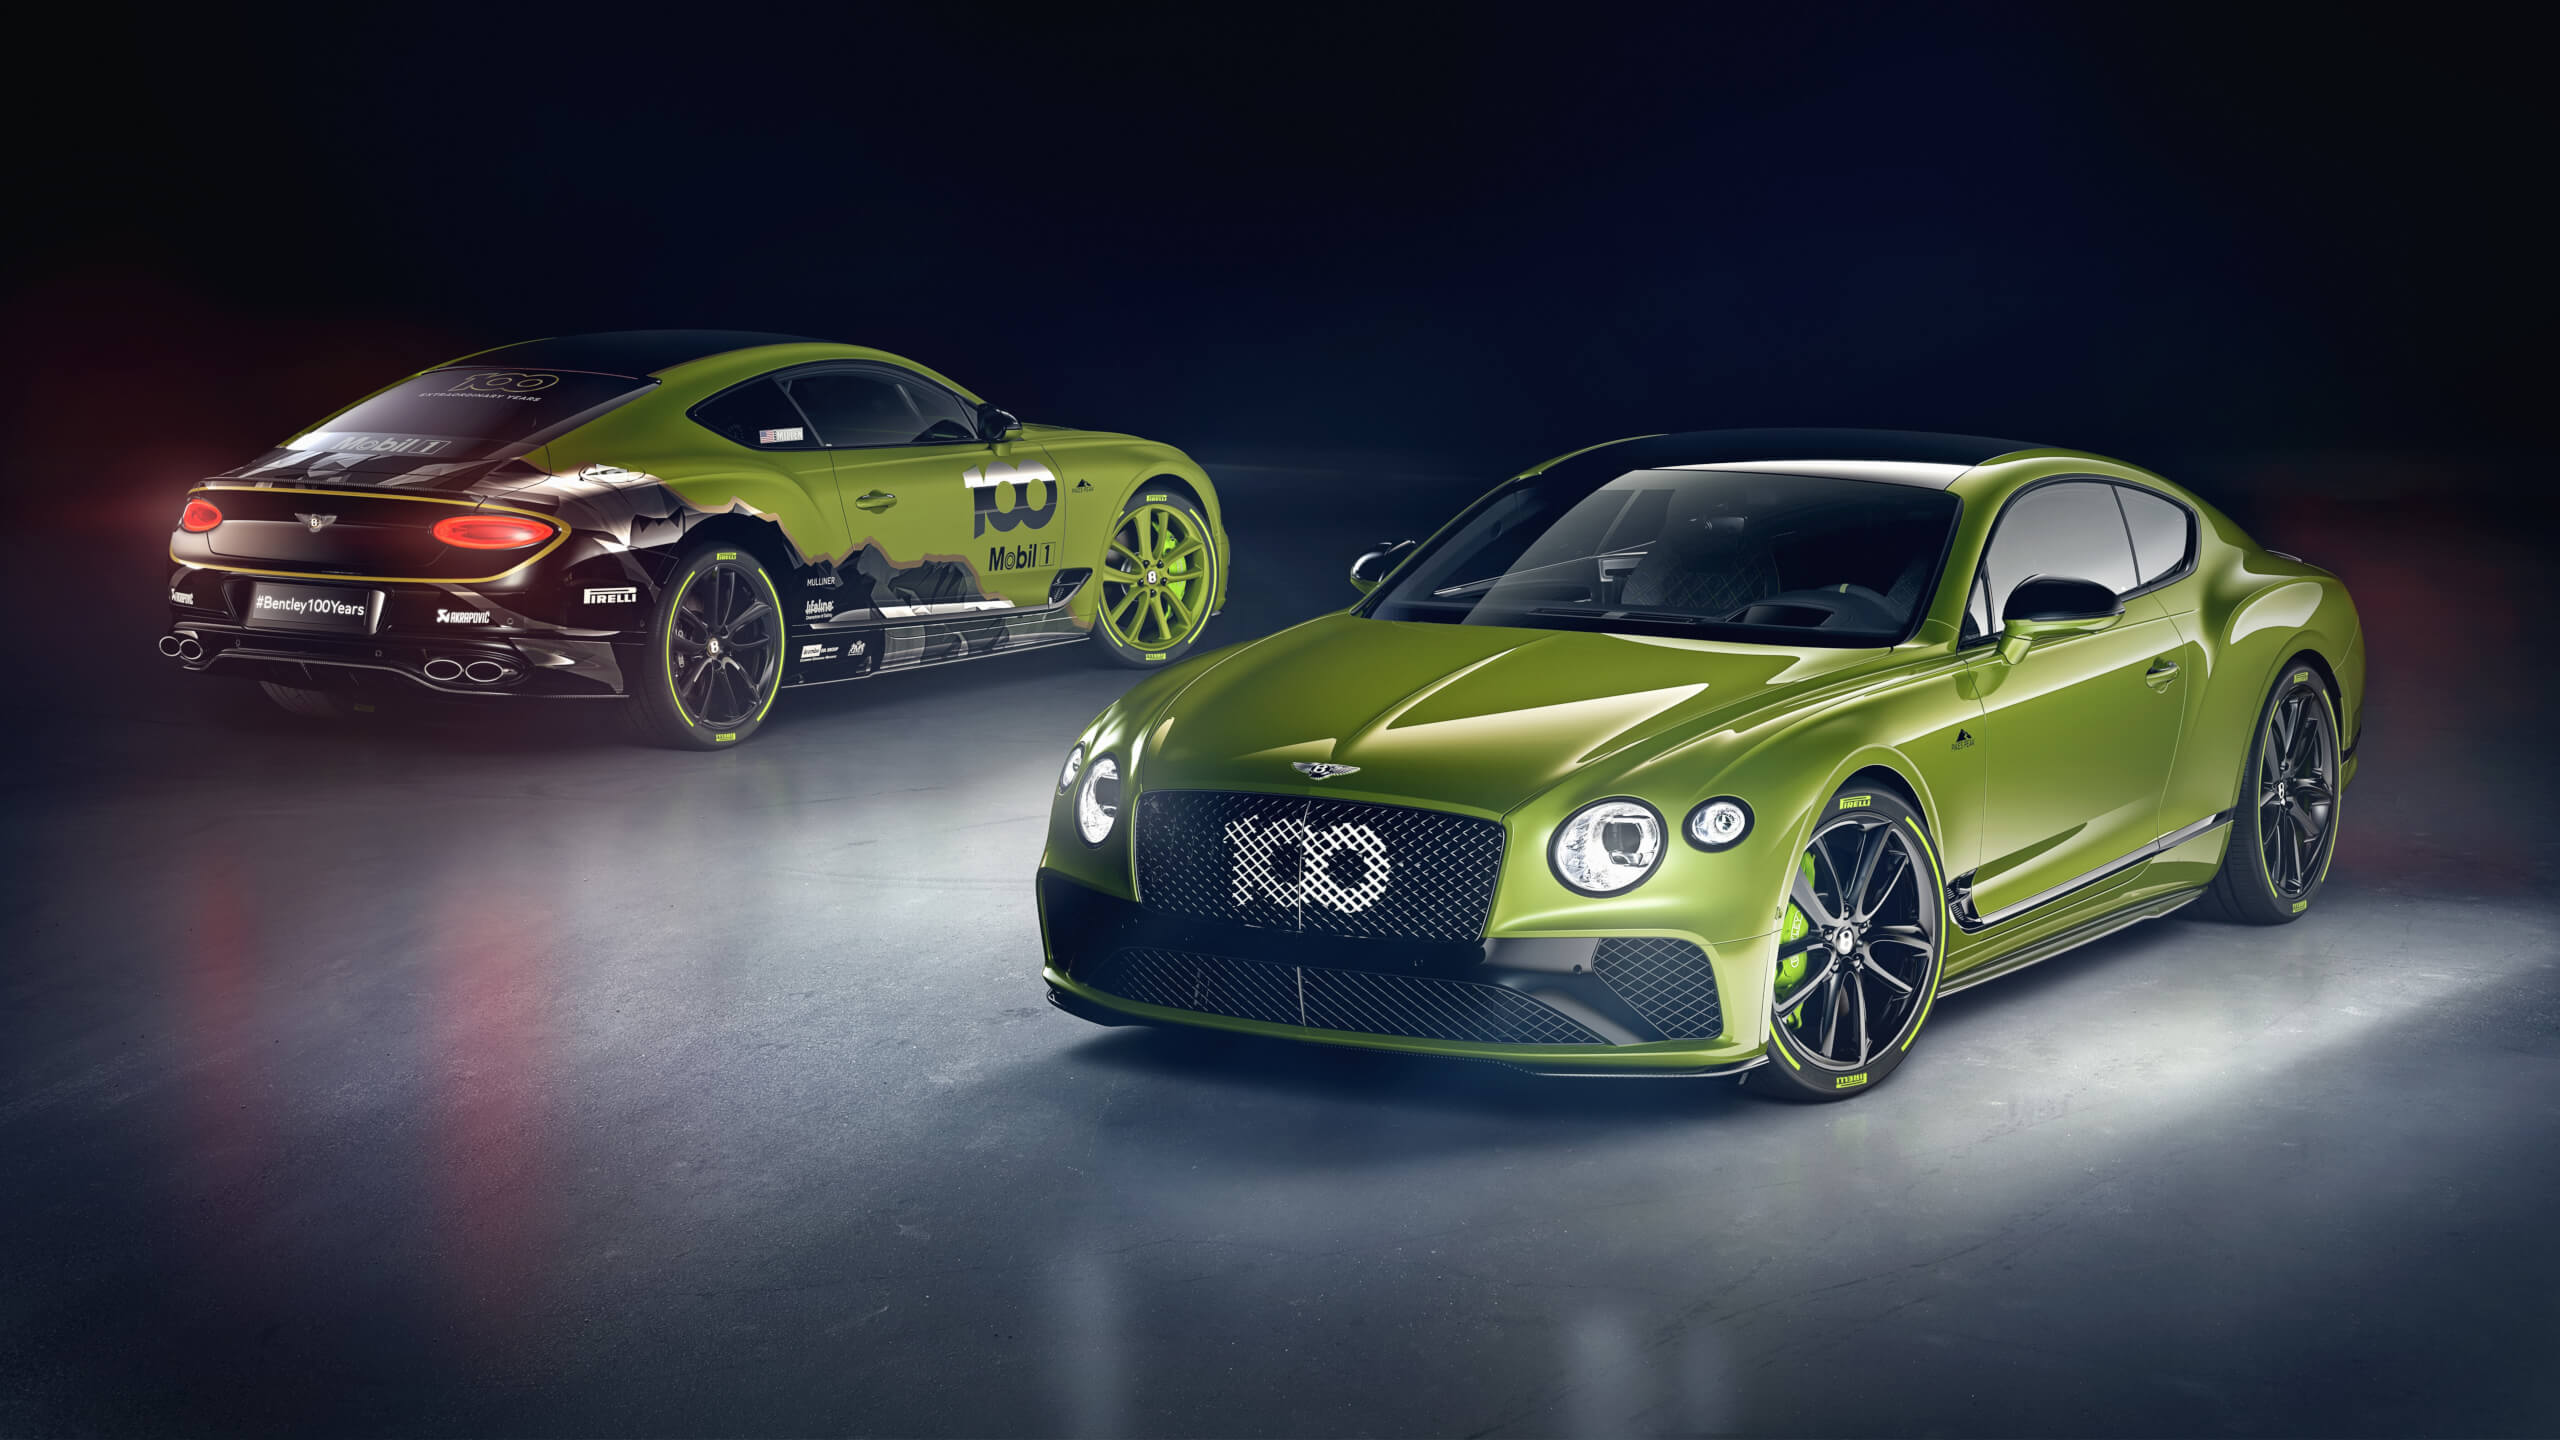 Bentley is releasing a Limited Edition Continental GT celebrating their Pikes Peak Hill Climb record.